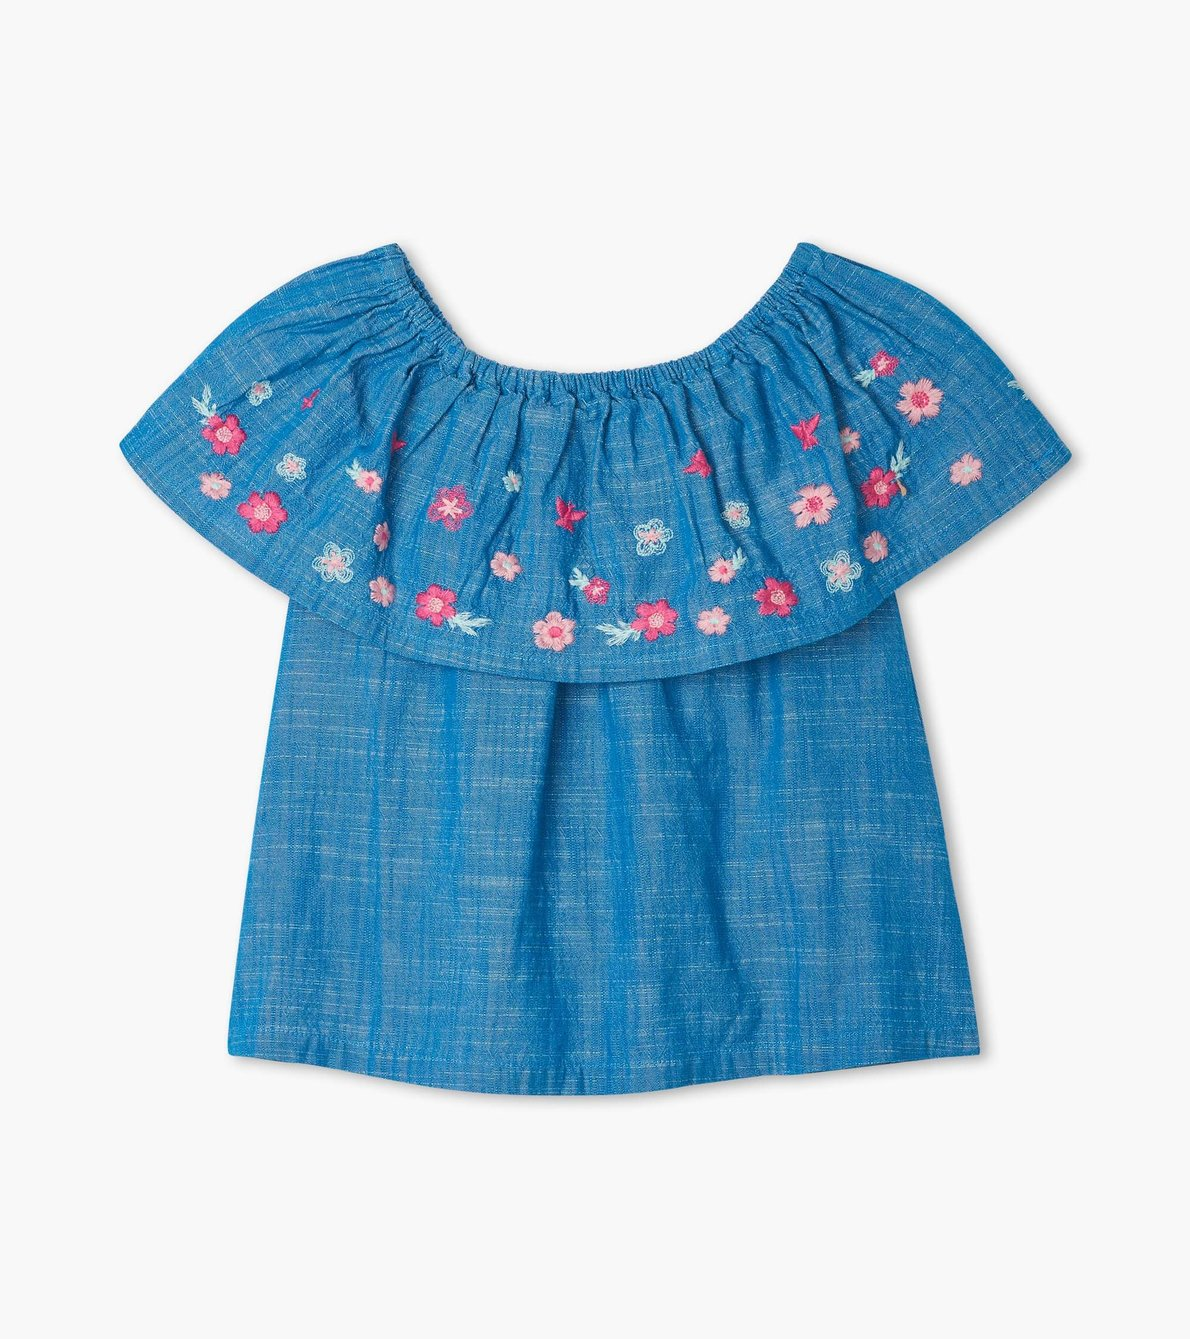 View larger image of Spring Flowers Shoulder Flounce Top